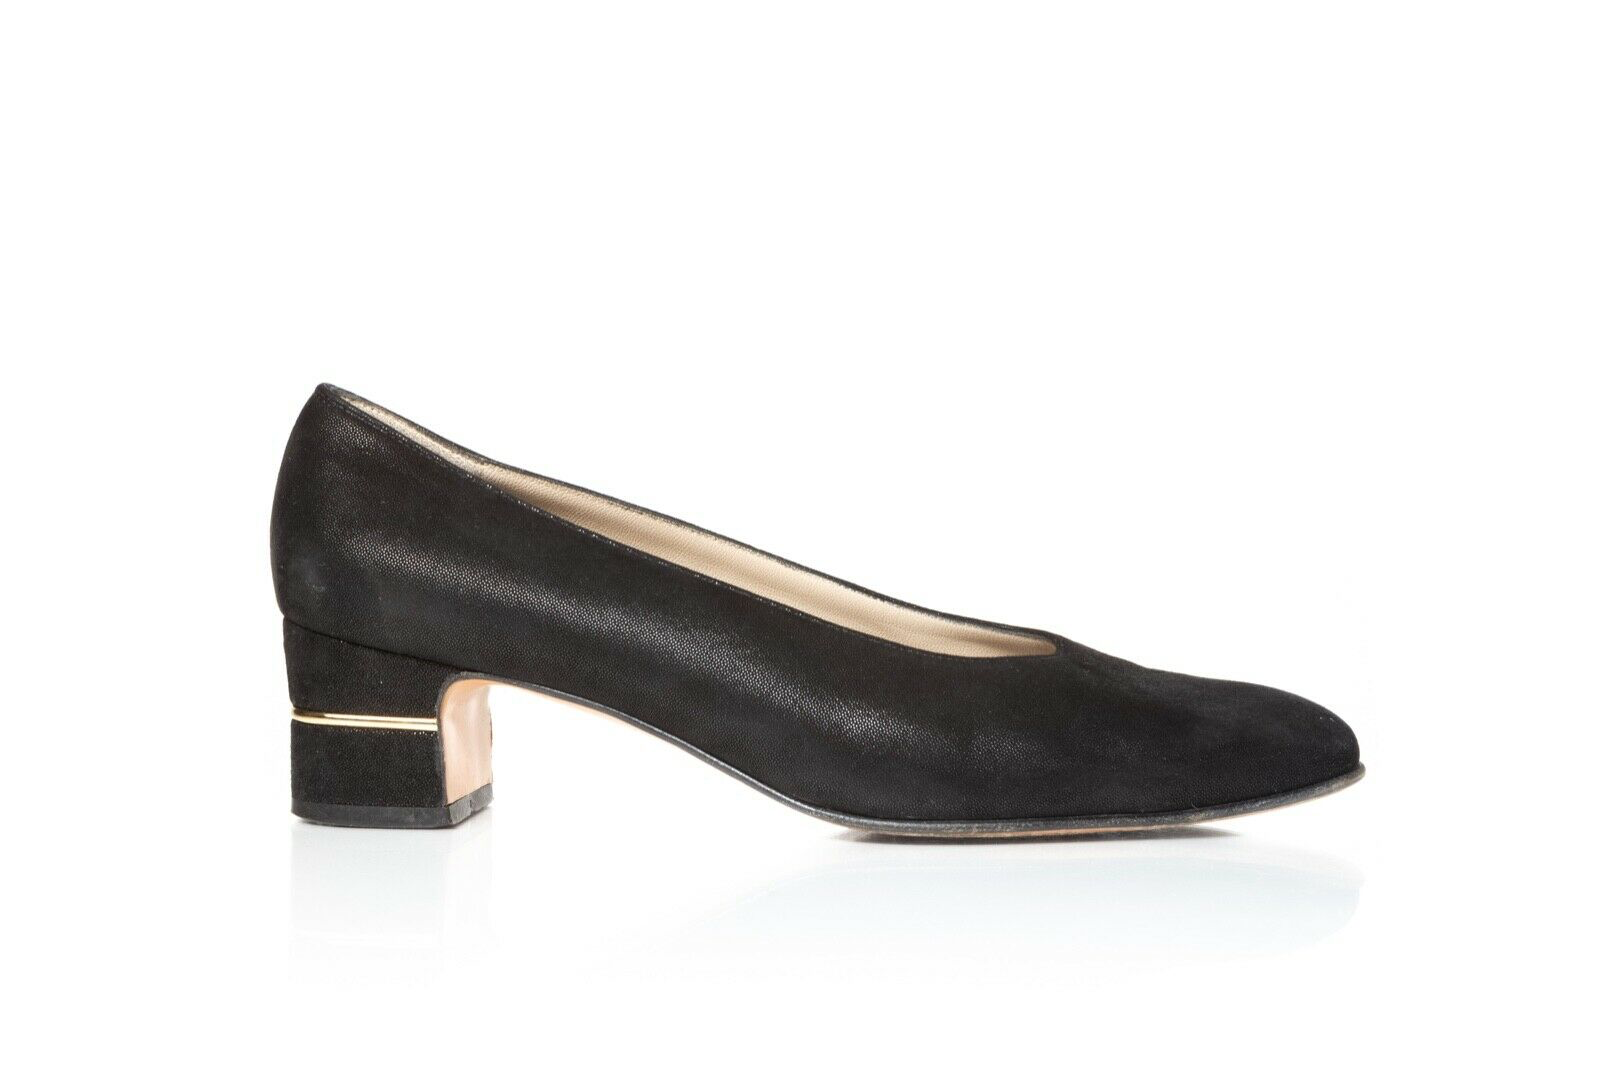 SALVATORE FERRAGAMO Classic Low Heel Pumps